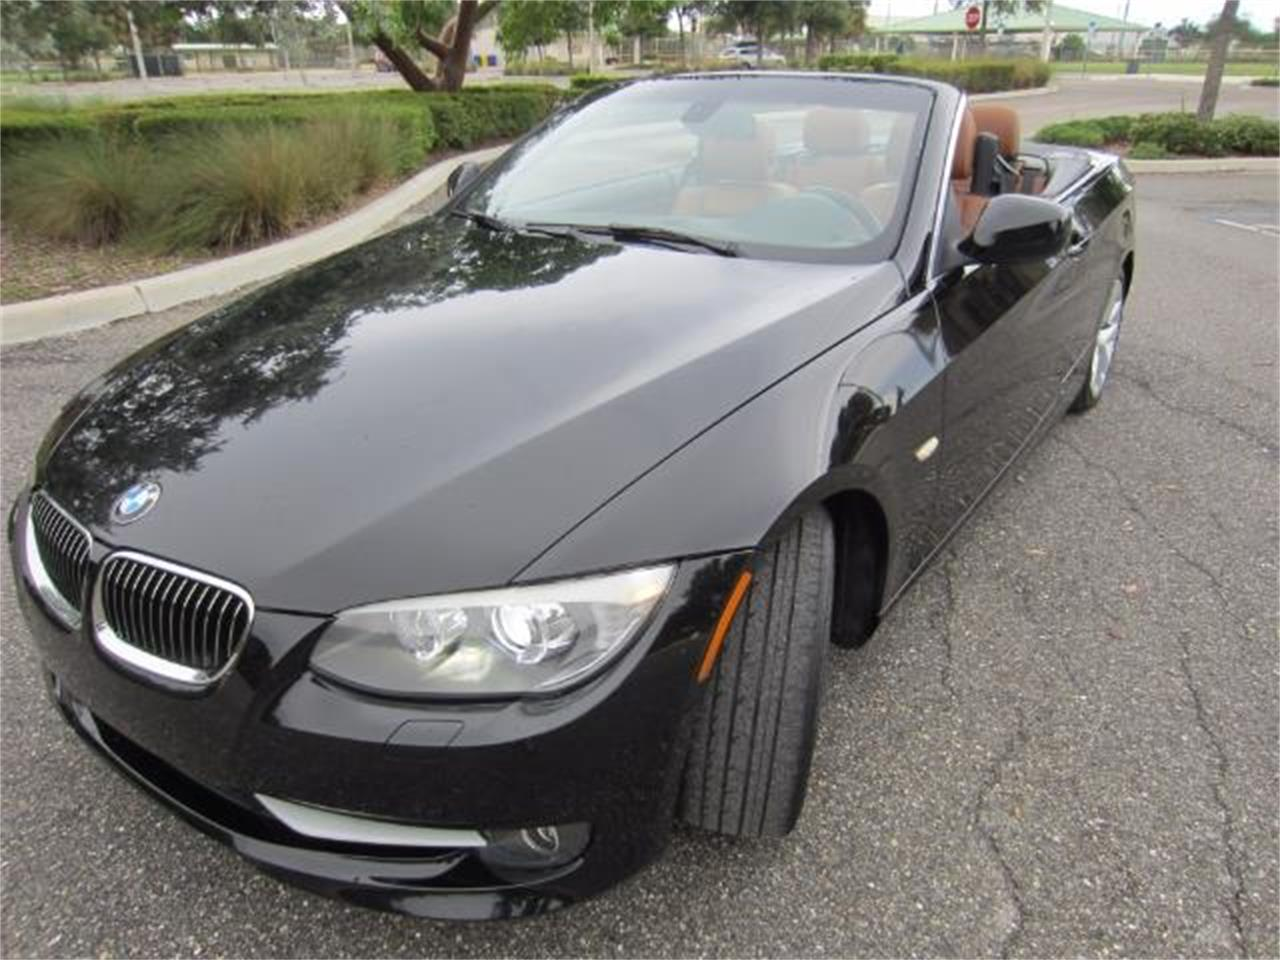 2011 BMW 328i for sale in Delray Beach, FL – photo 2